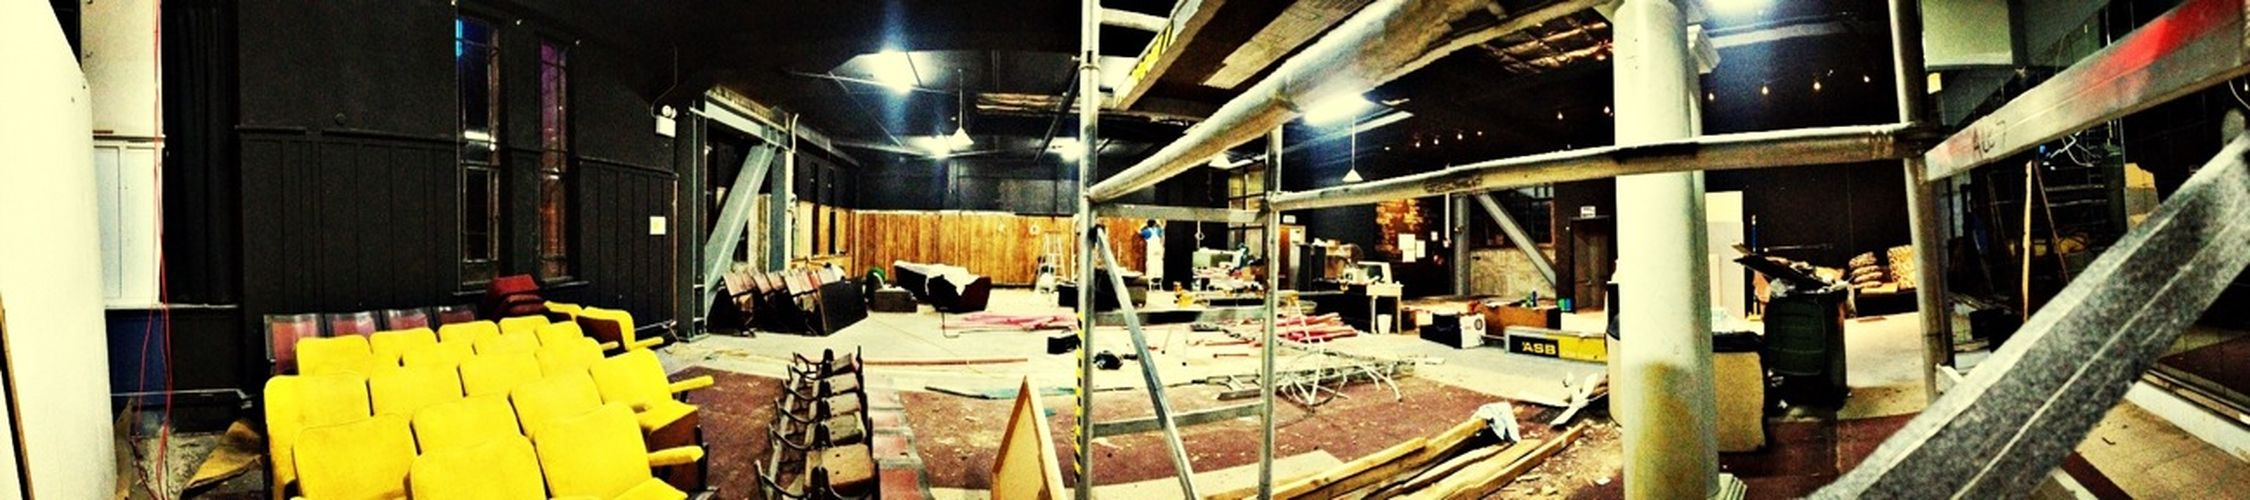 The beginnings of awesome!! The construction at Eight Ball. Don't Be Square